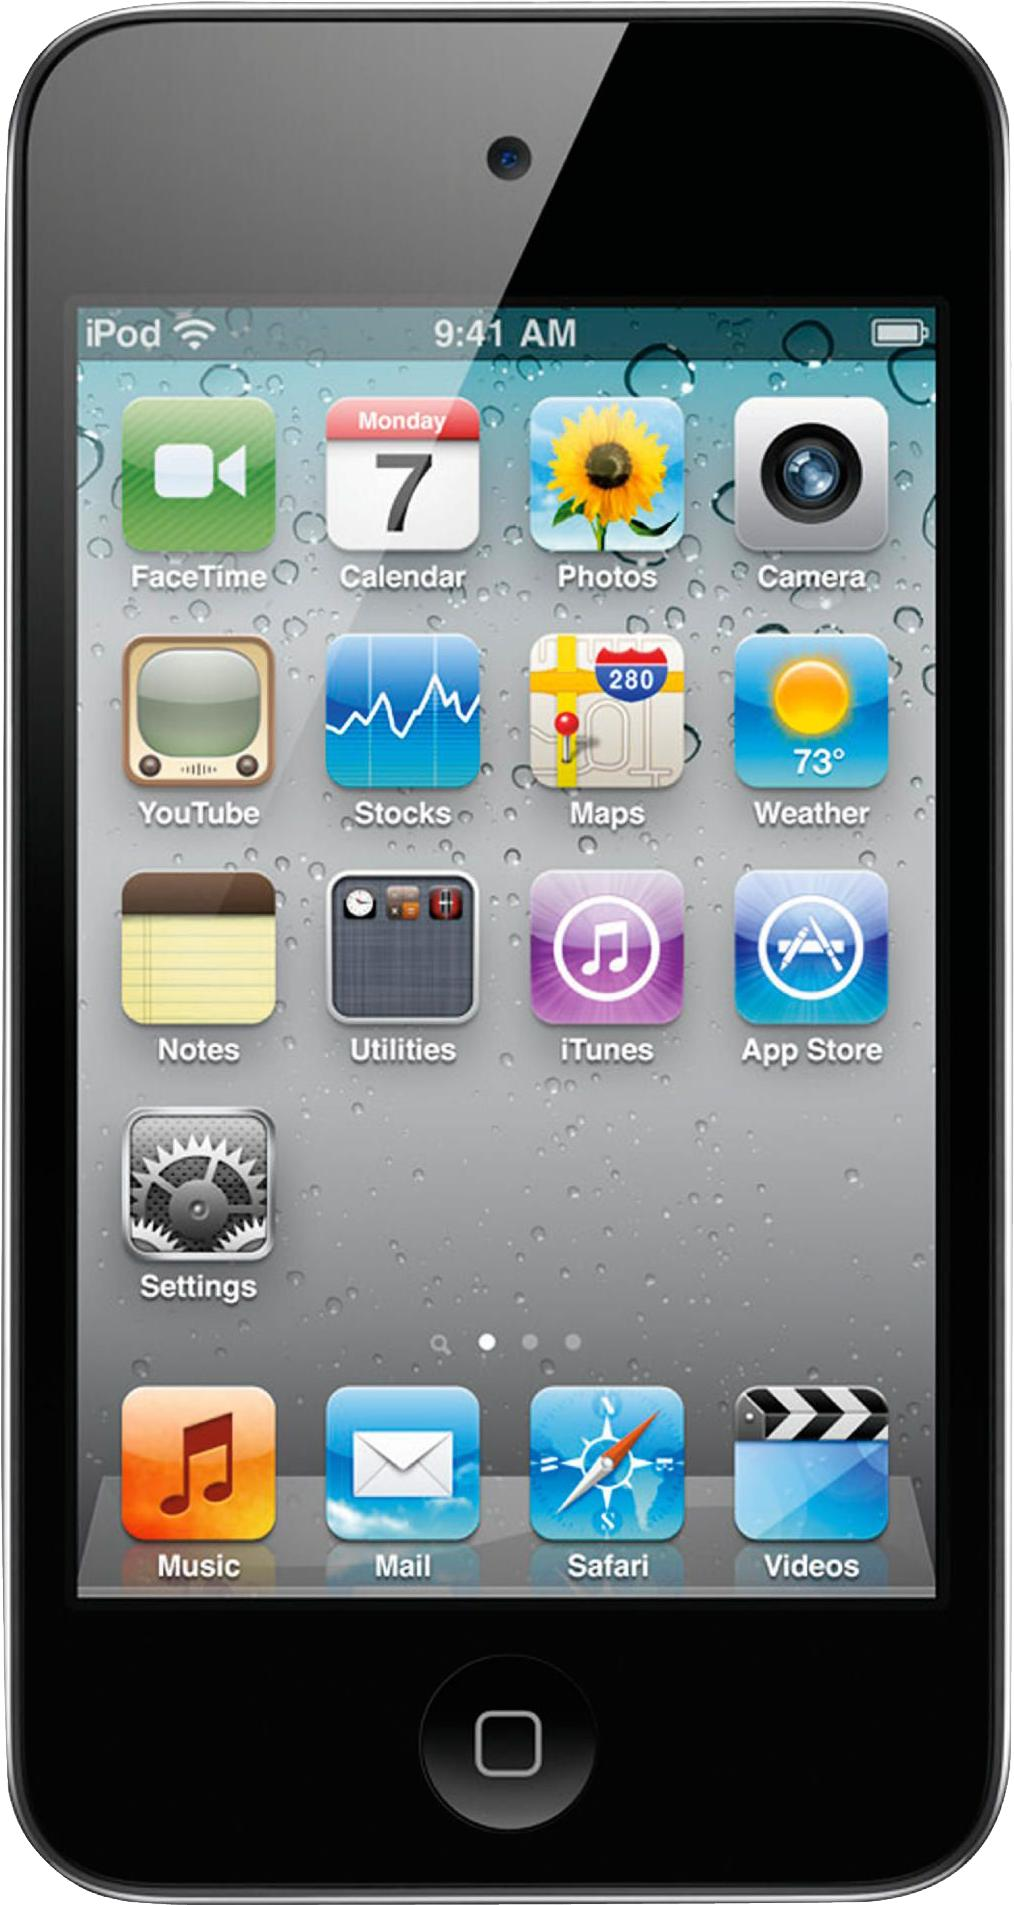 ipod touch marketing plan